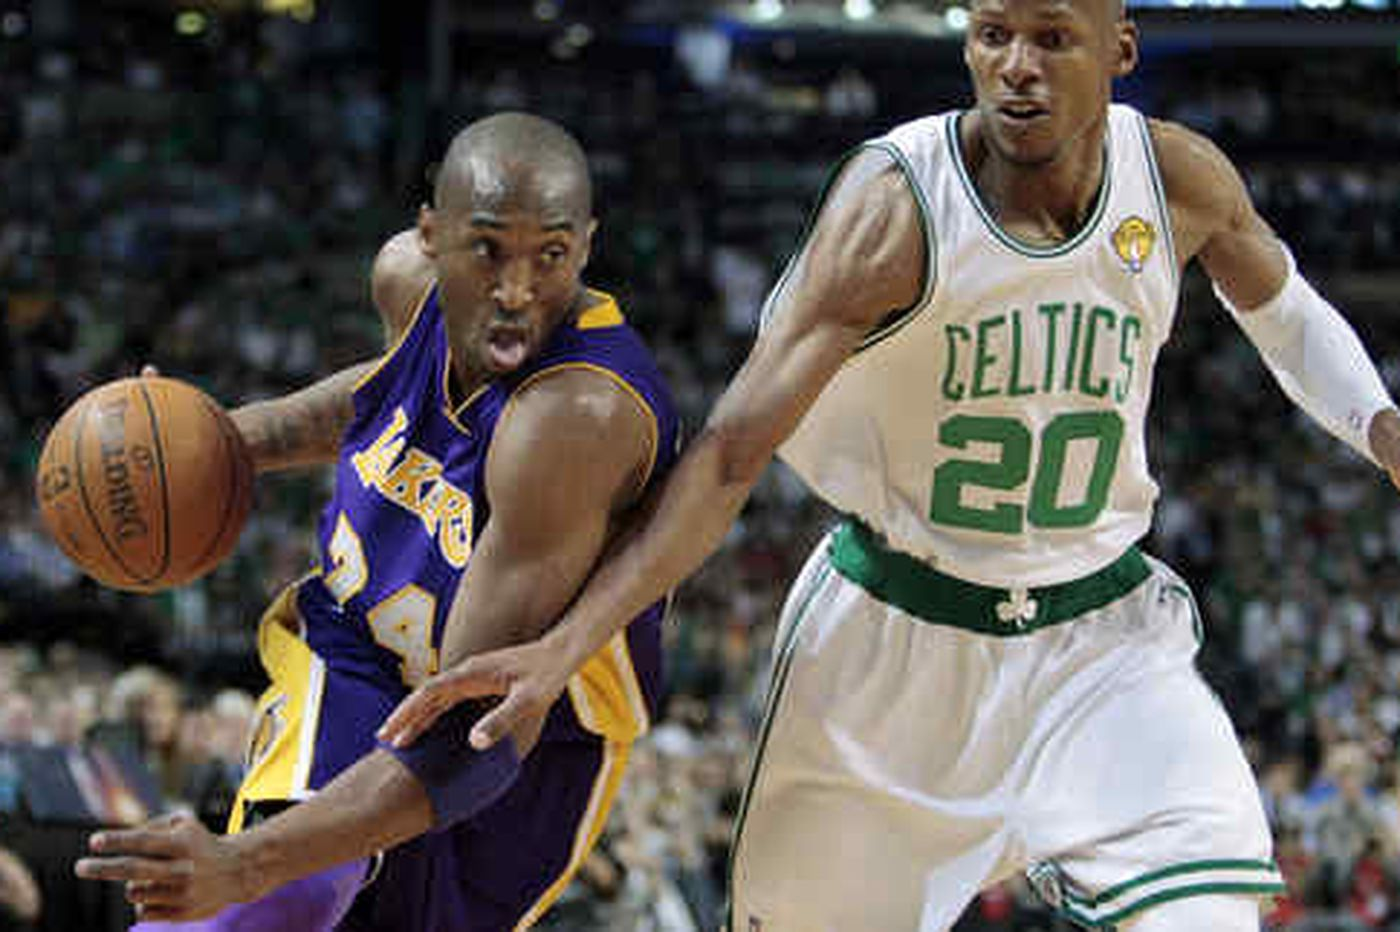 NBA: Reserve to the rescue for Celtics